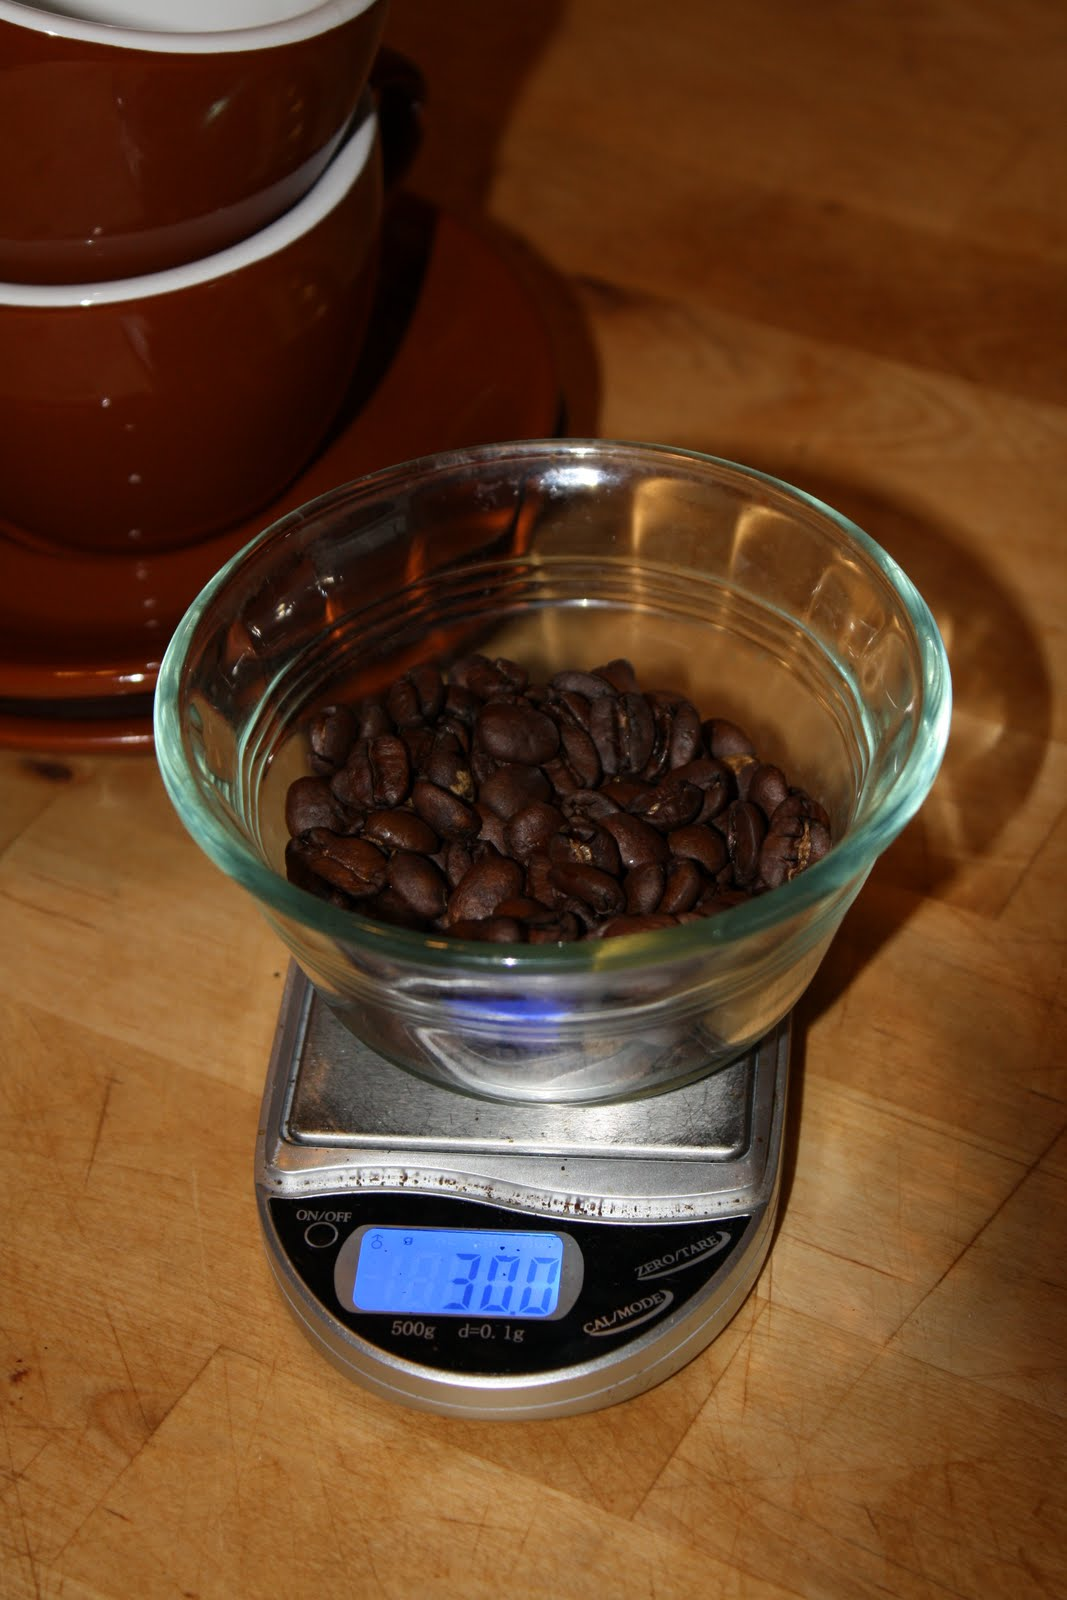 Weighing the coffee